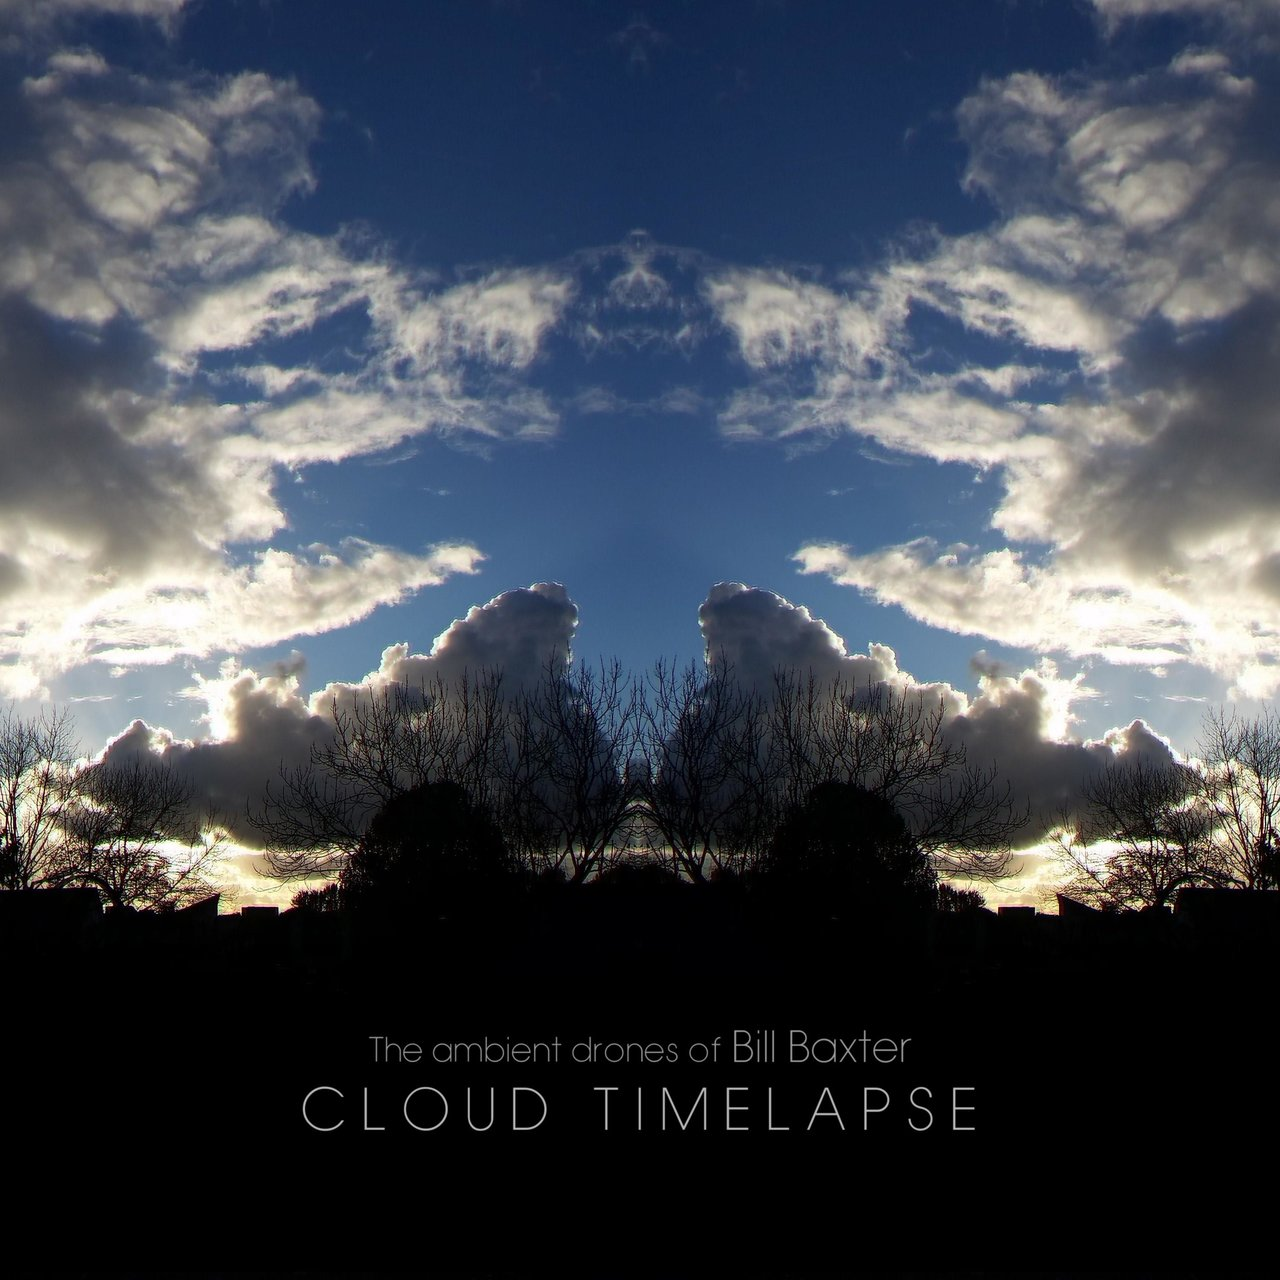 Cloud Timelapse